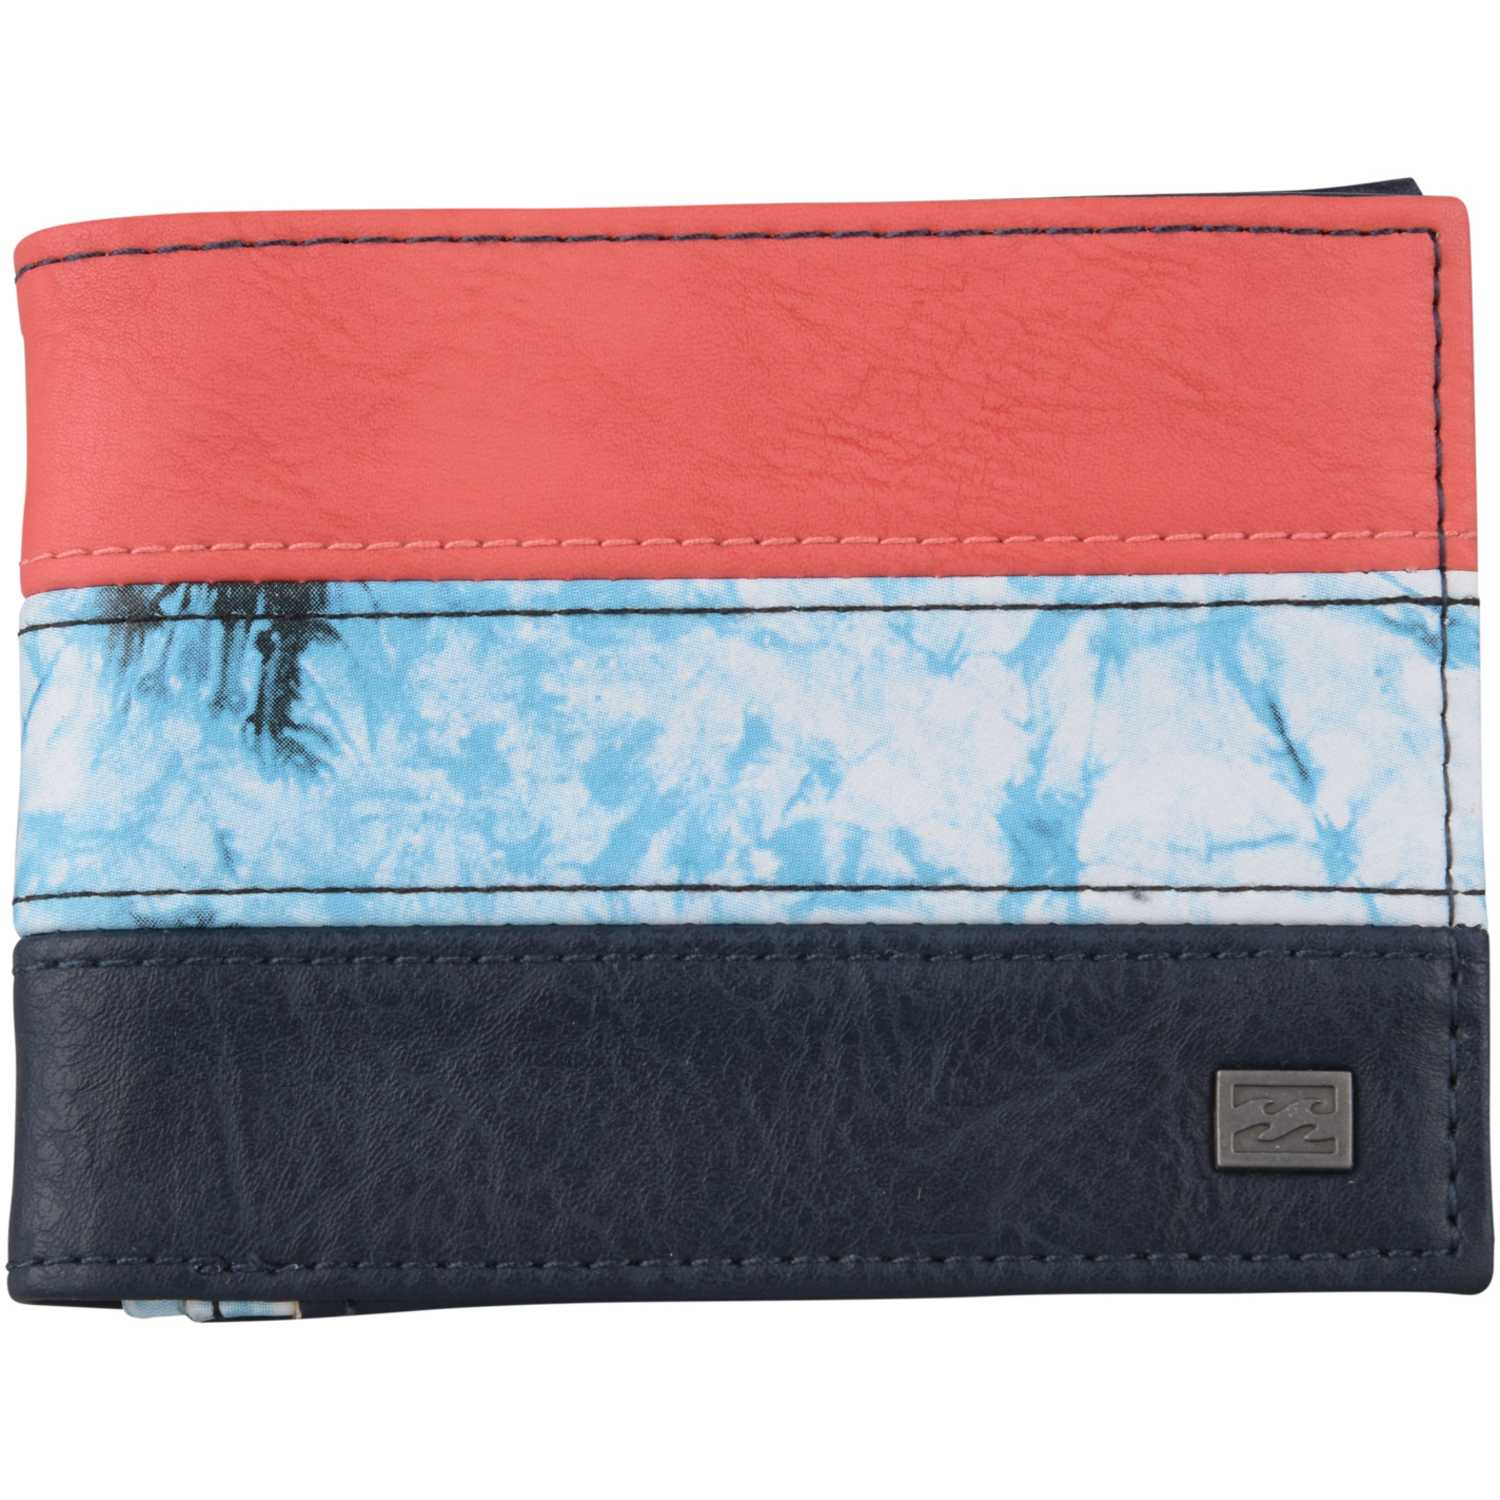 4fa68324c Billetera de Hombre Billabong Negro / Rojo tribong wallet ...